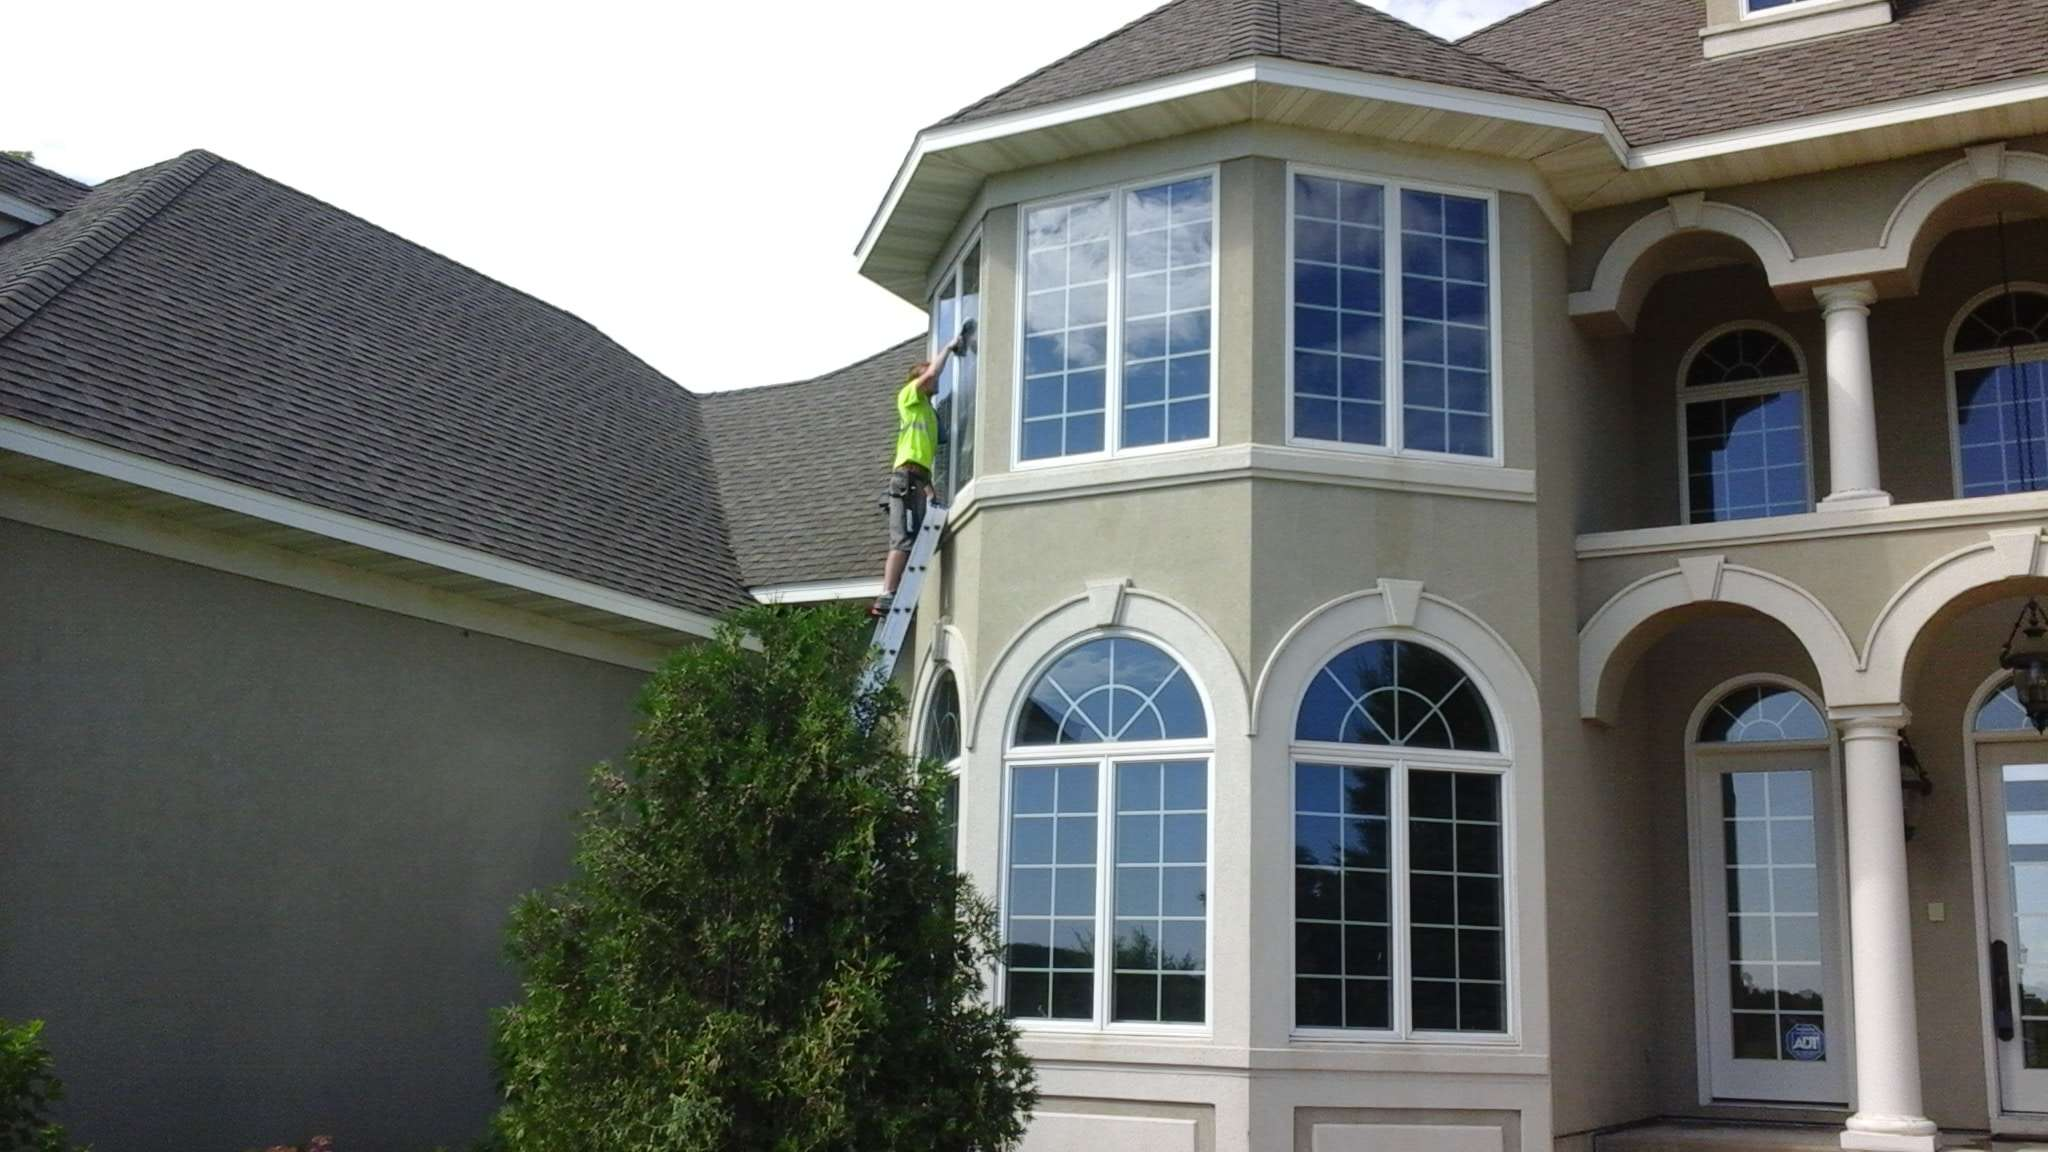 Cleaning Exterior Windows From Inside How To Clean